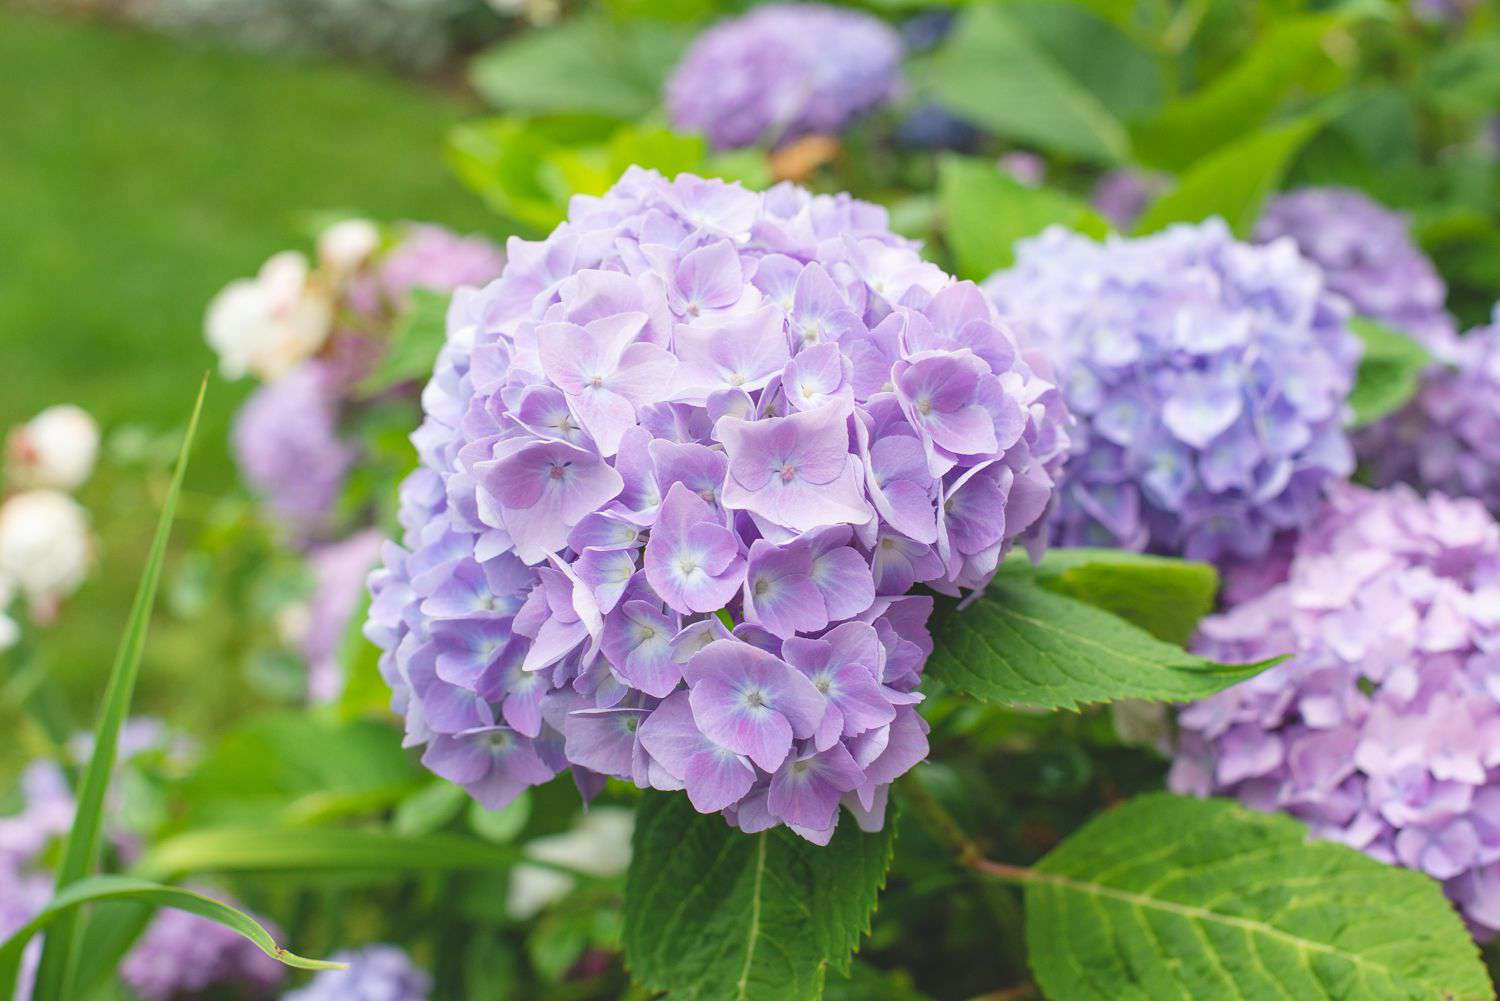 Hydrangea plant with light purple and large round flower clusters on edge of stem